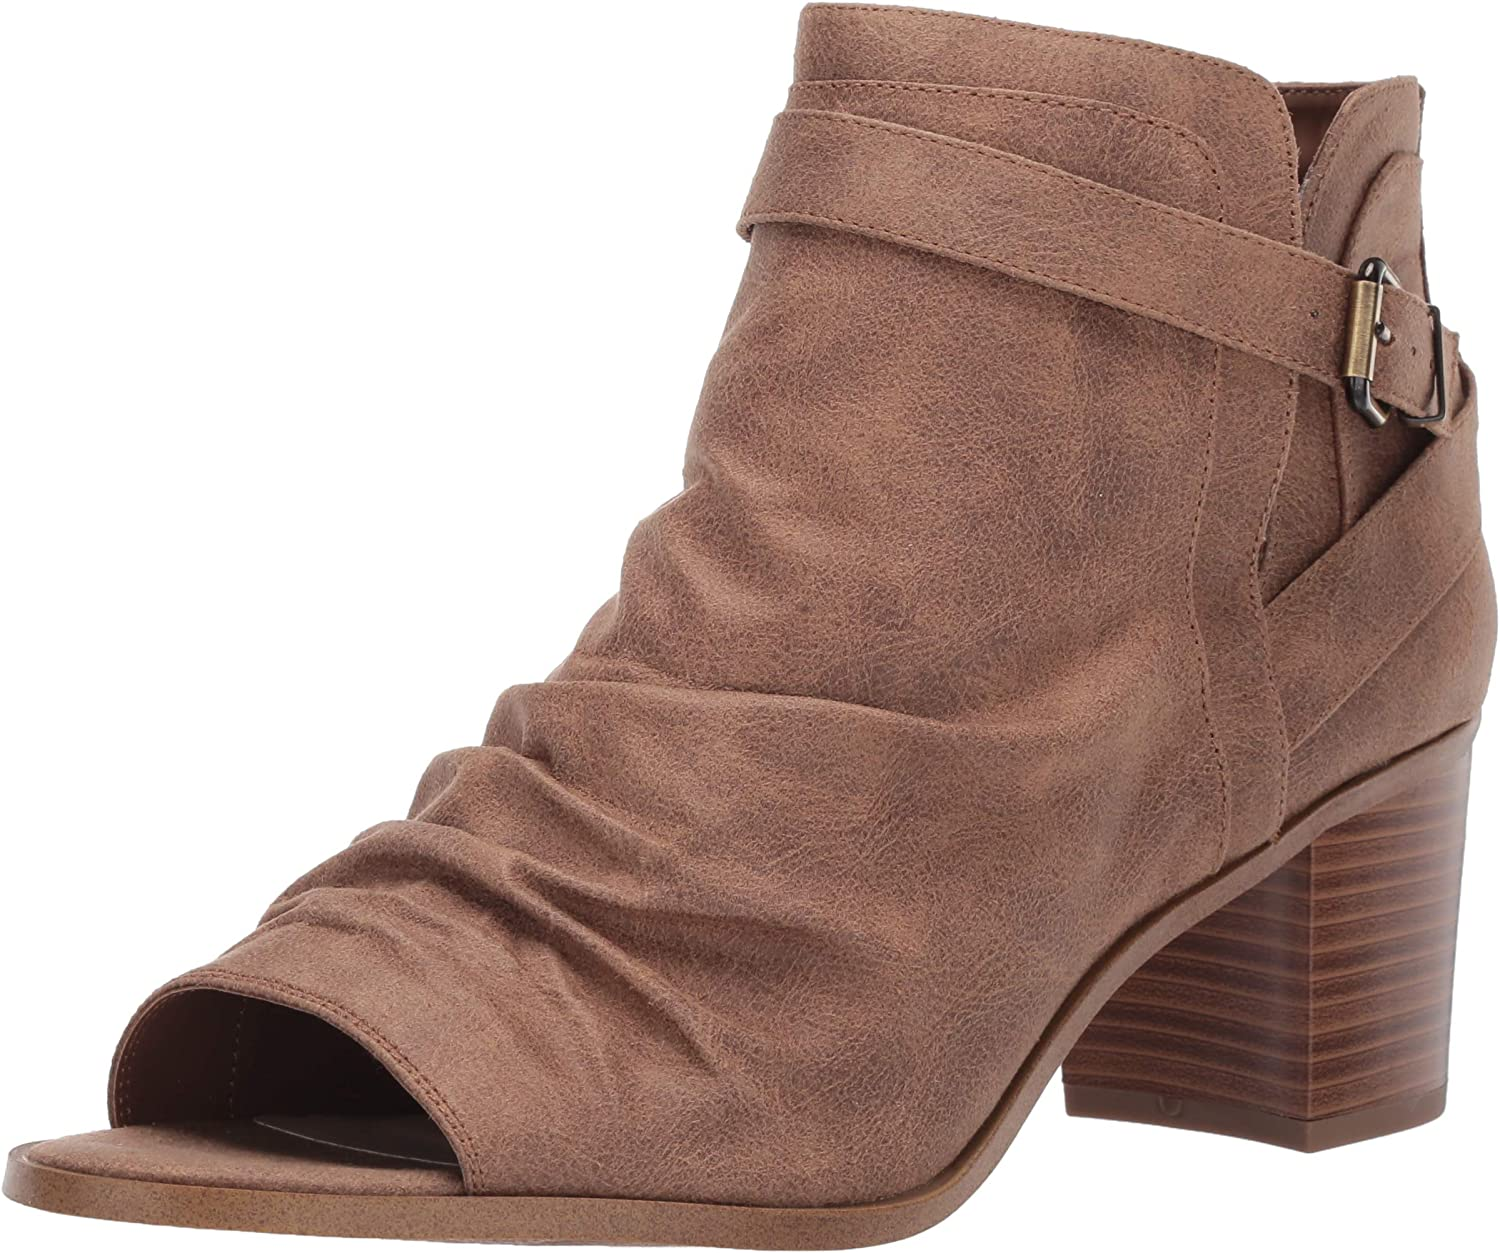 Fergie Women's Jaded Booties Max 57% OFF Ankle Brand new Boot